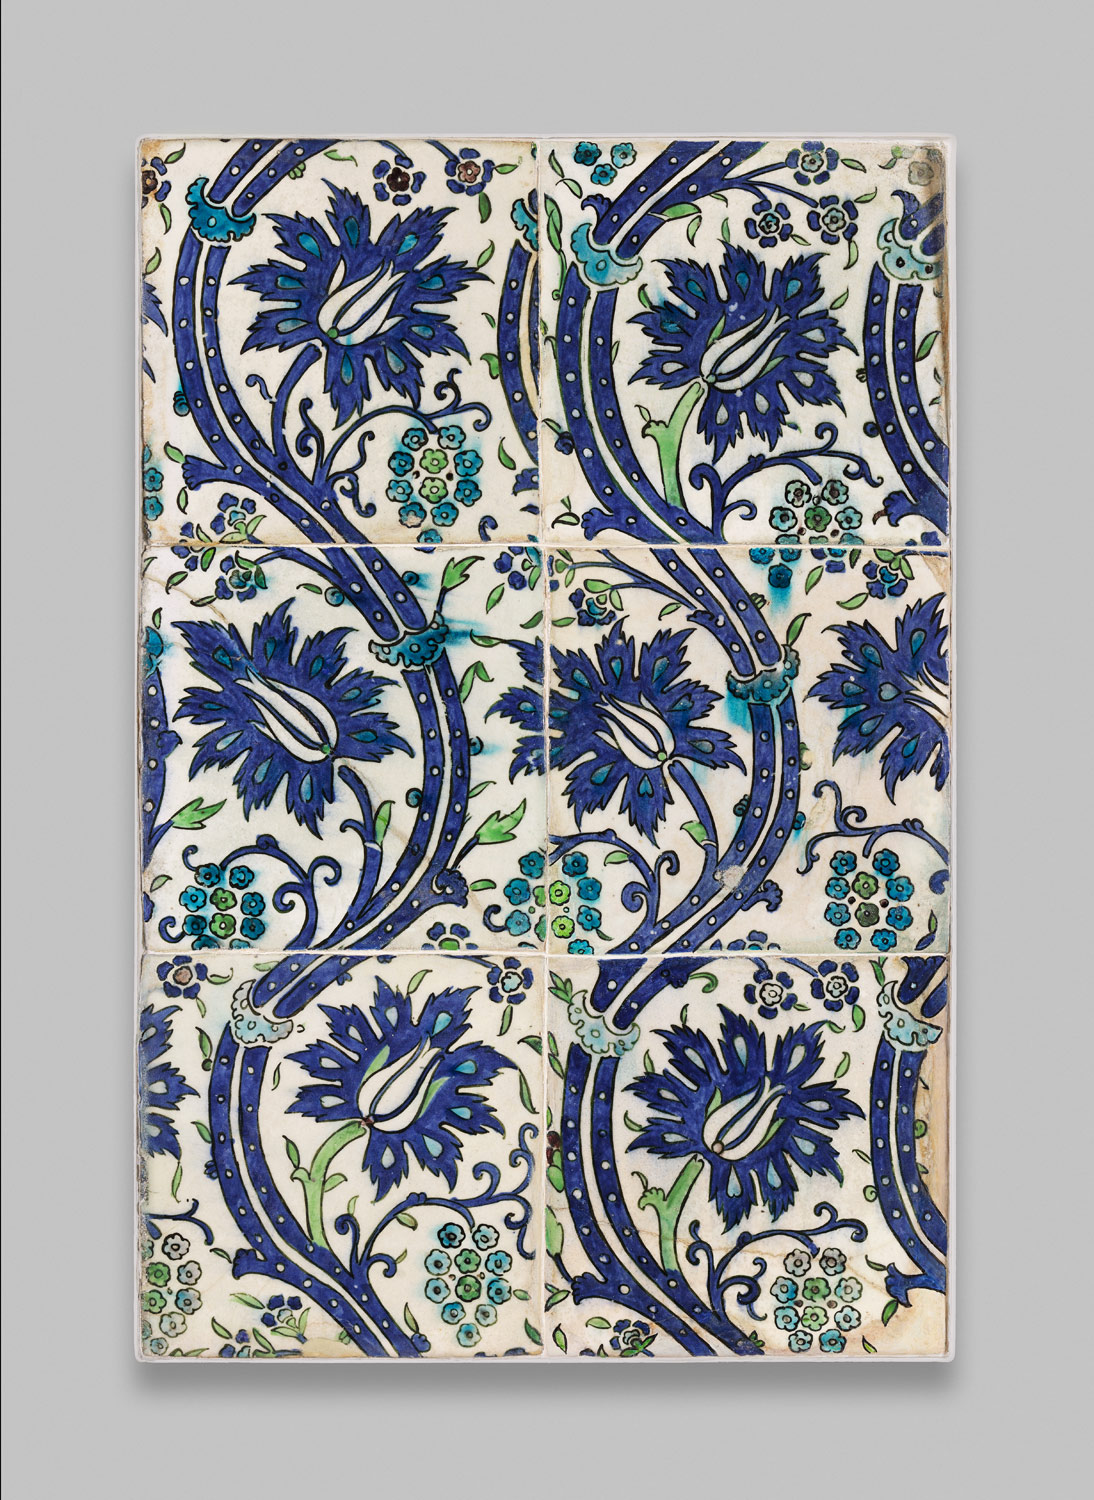 Vegetal Patterns in Islamic Art | Essay | Heilbrunn Timeline of ...